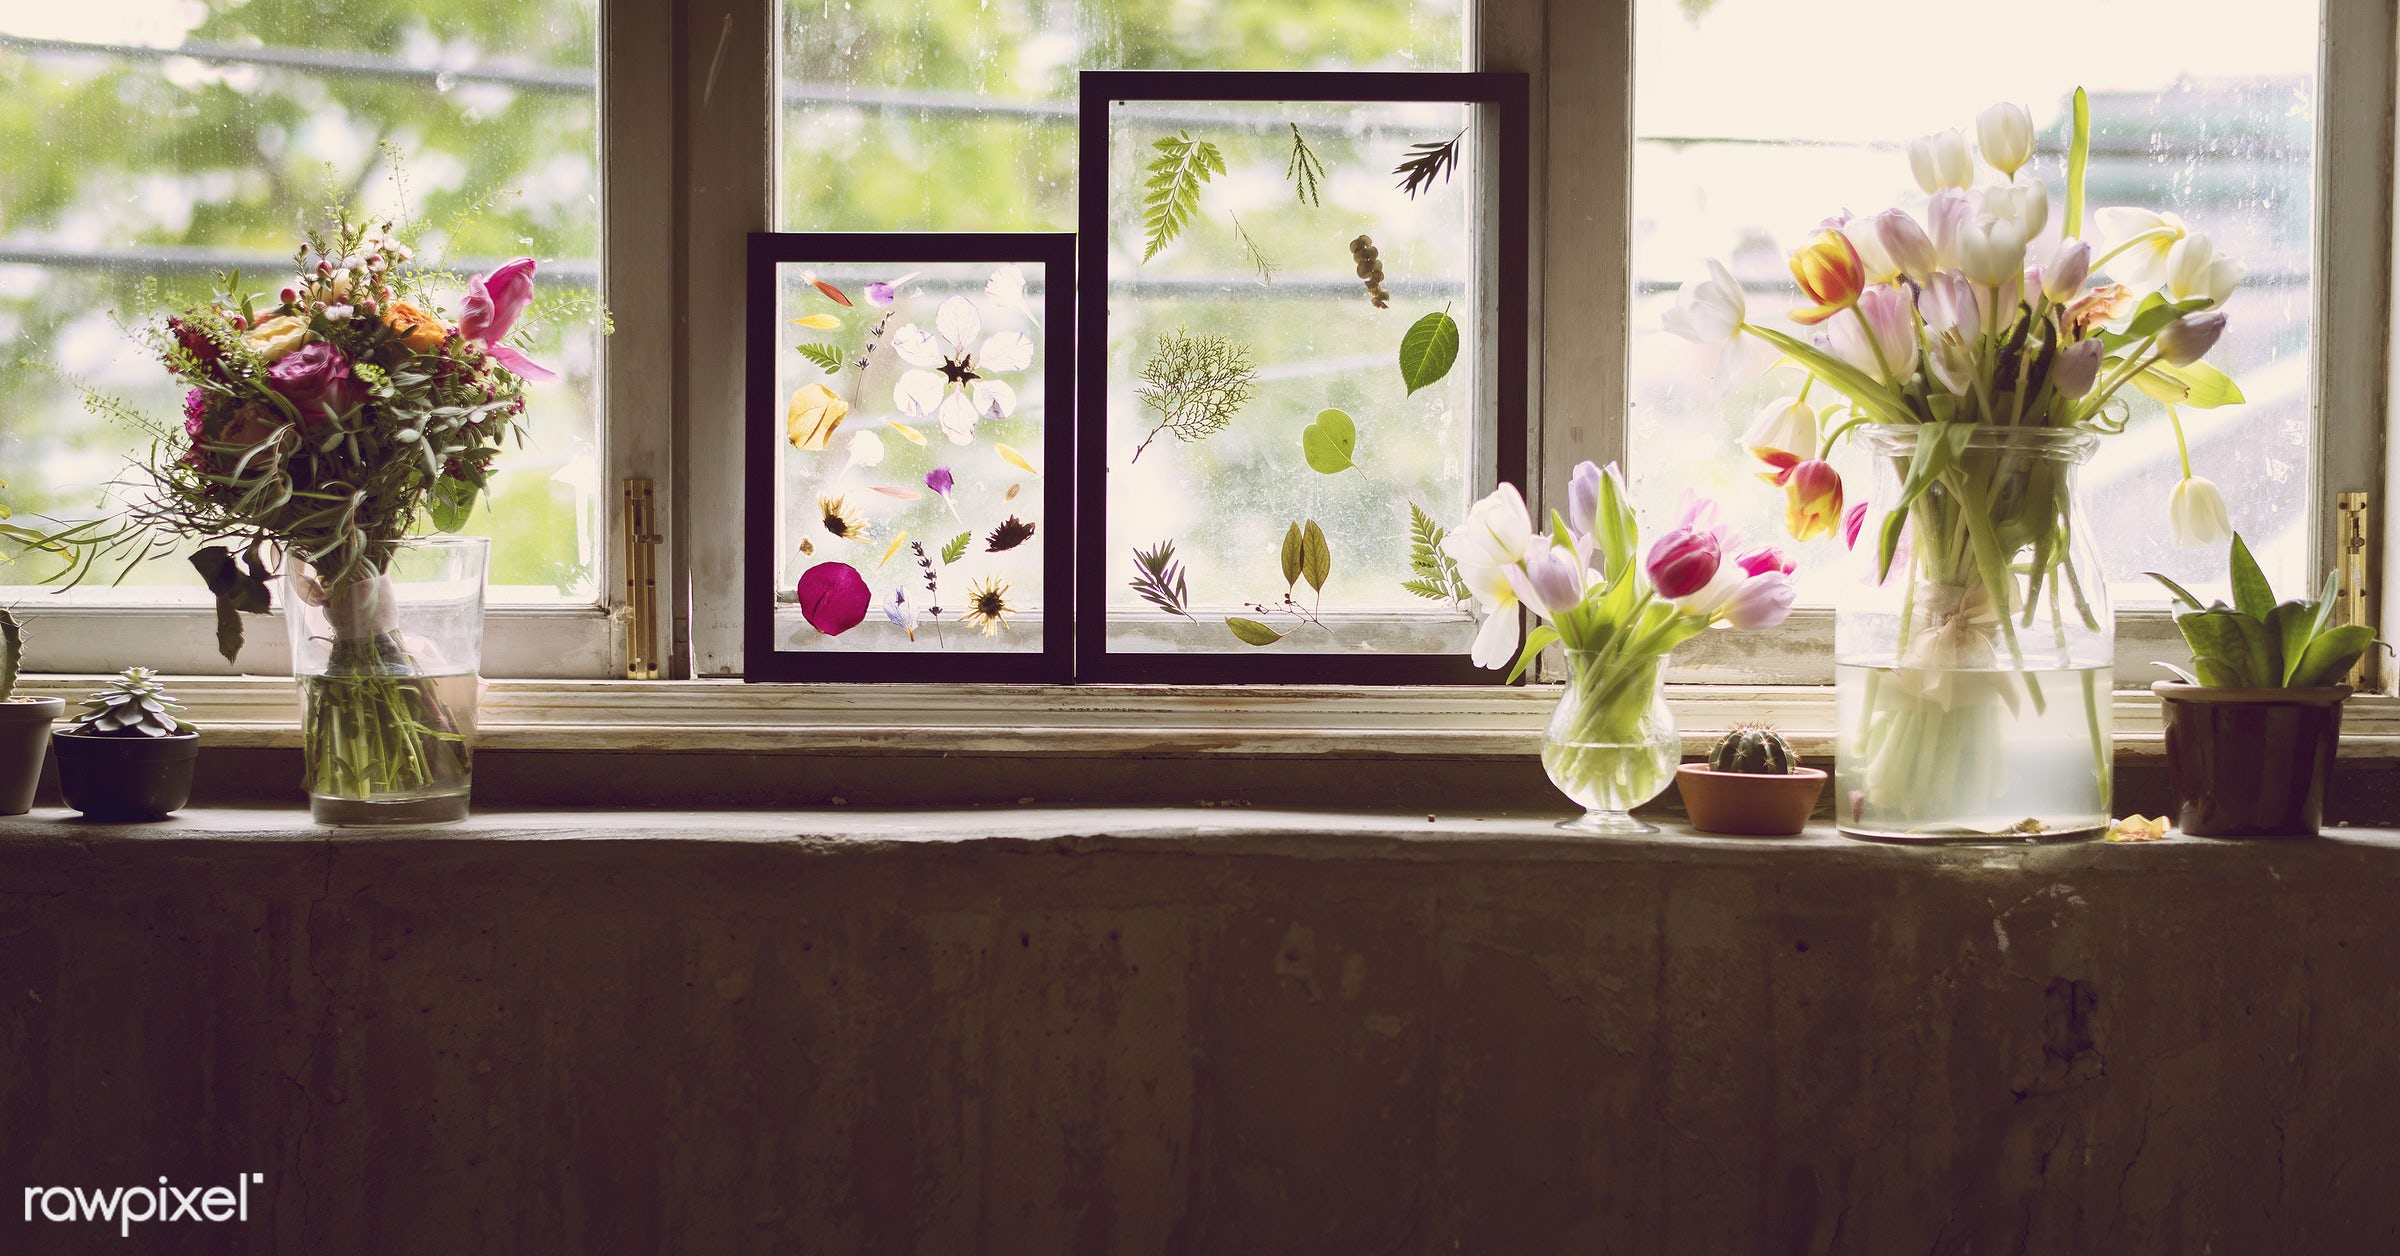 plant, bouquet, decorative, botany, plants, romance, spring, blossom, nature, fresh, flower, anniversary, blooming,...